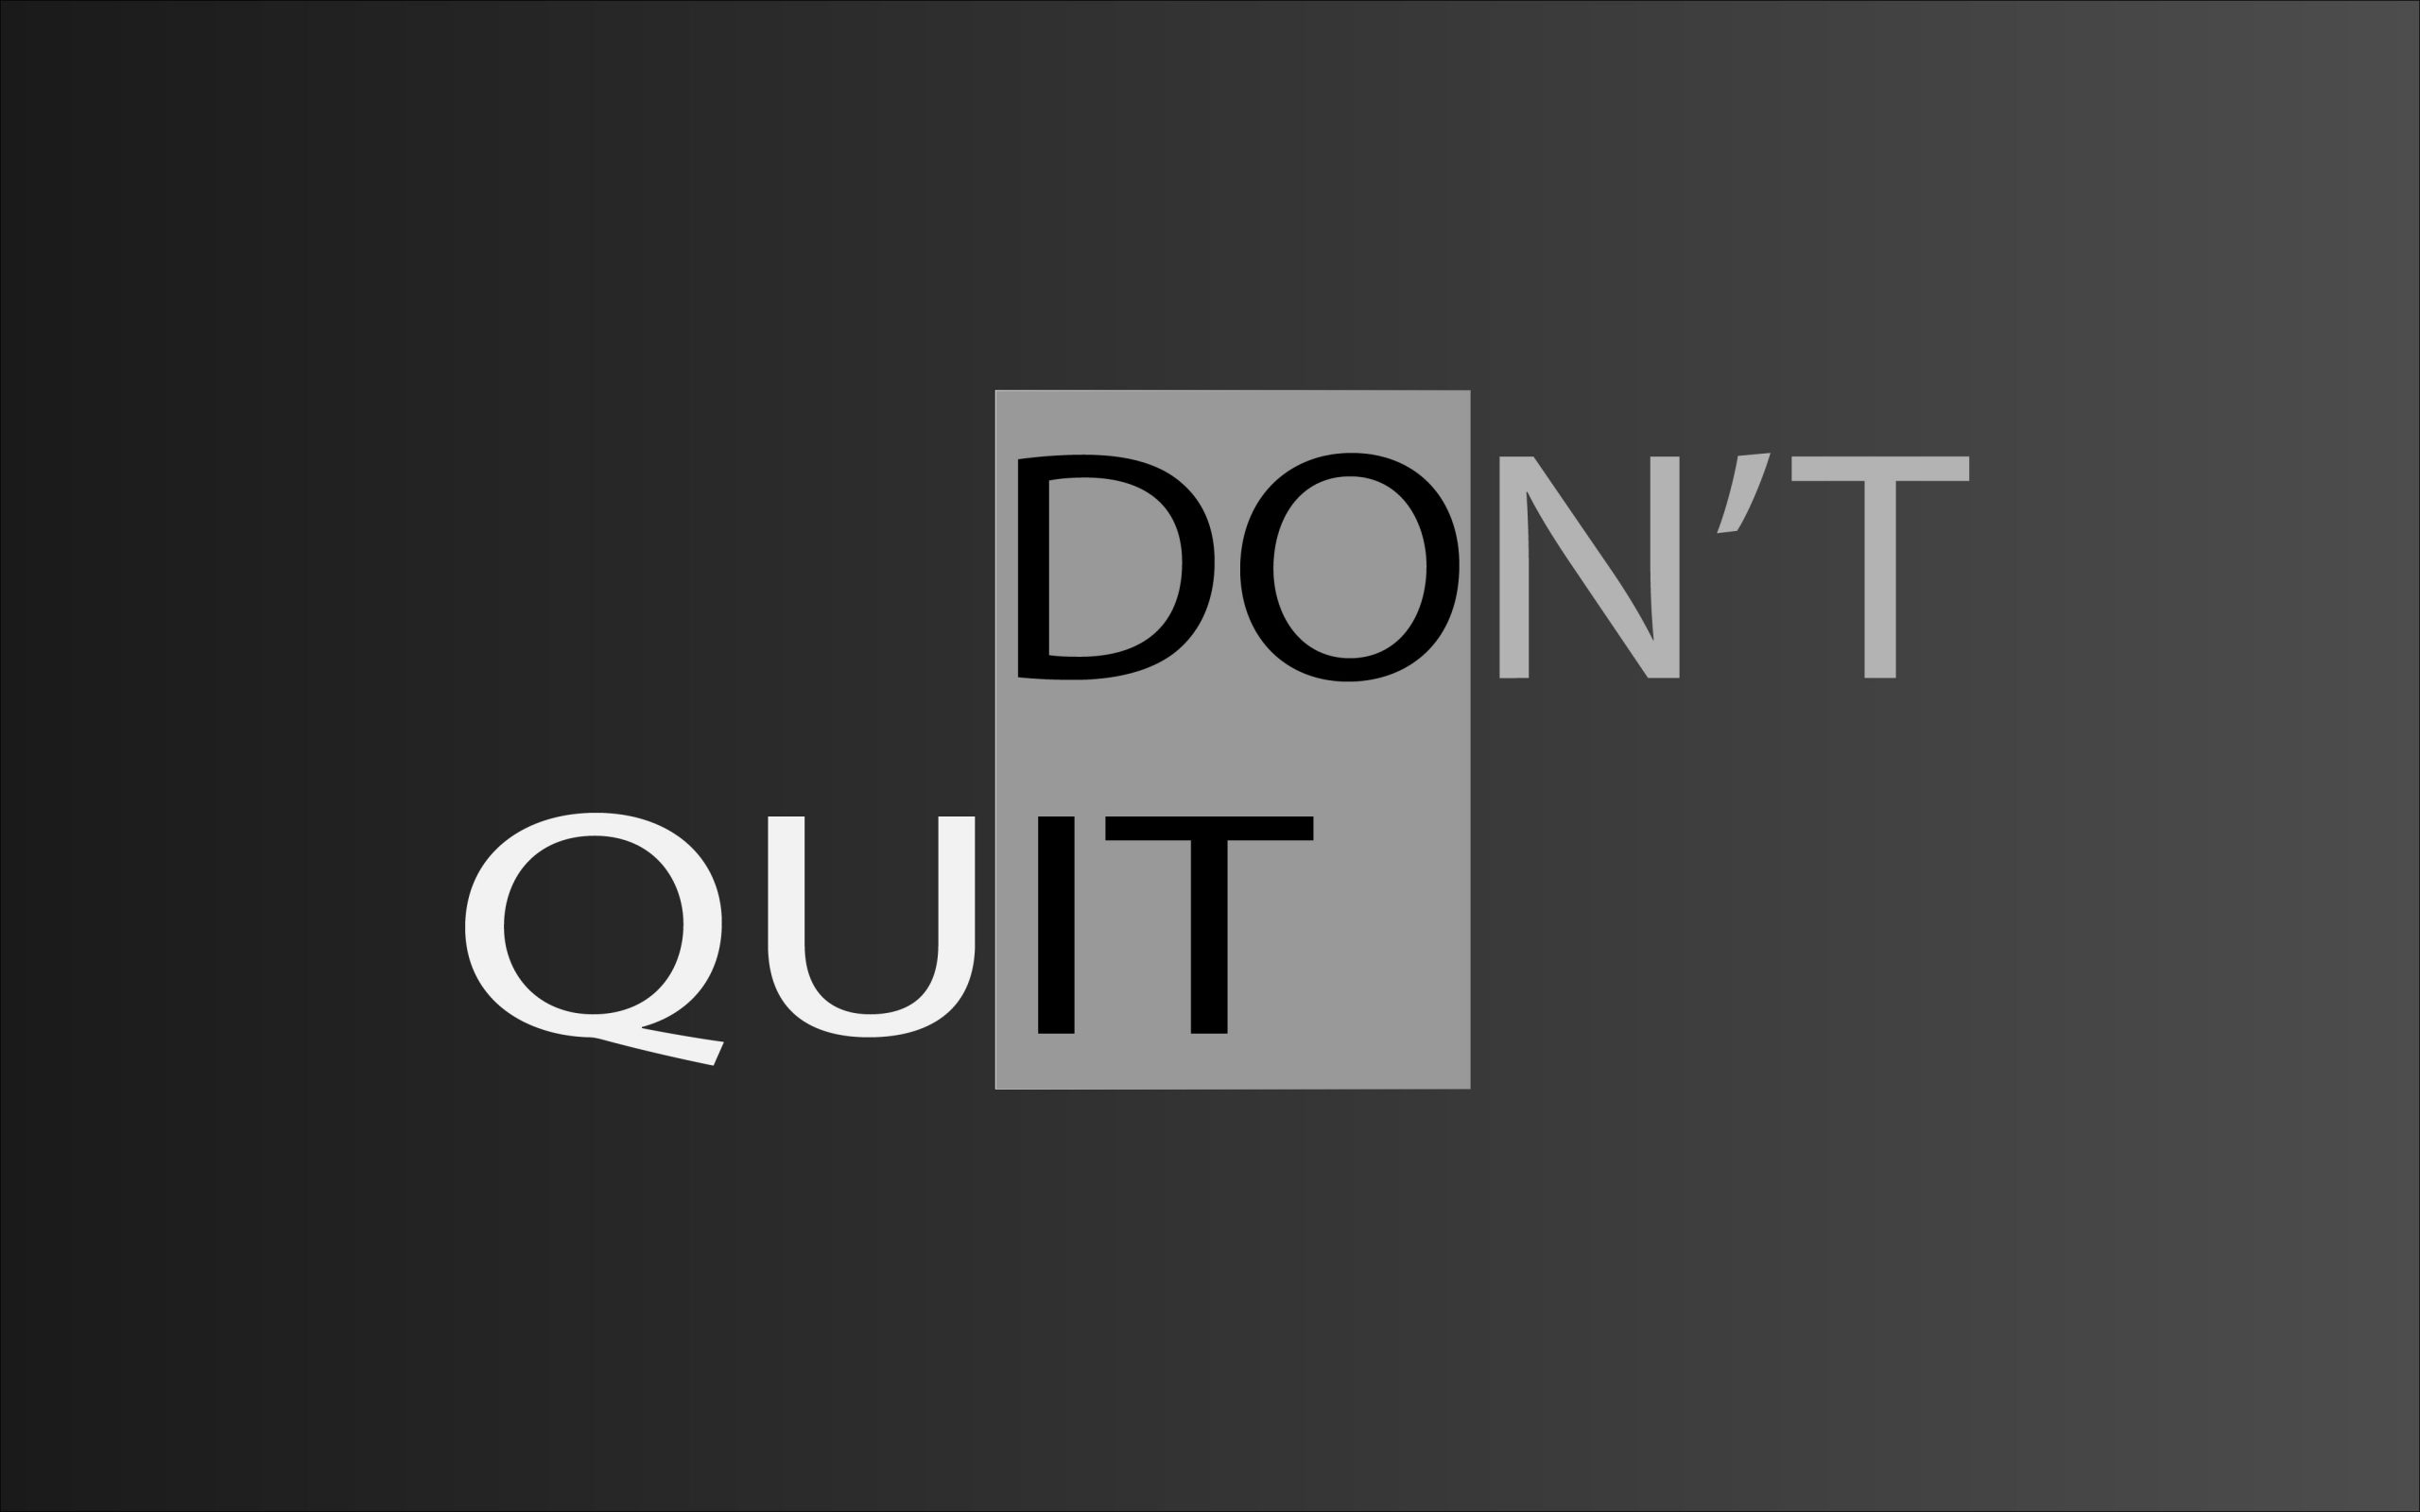 Motivational message of never give up